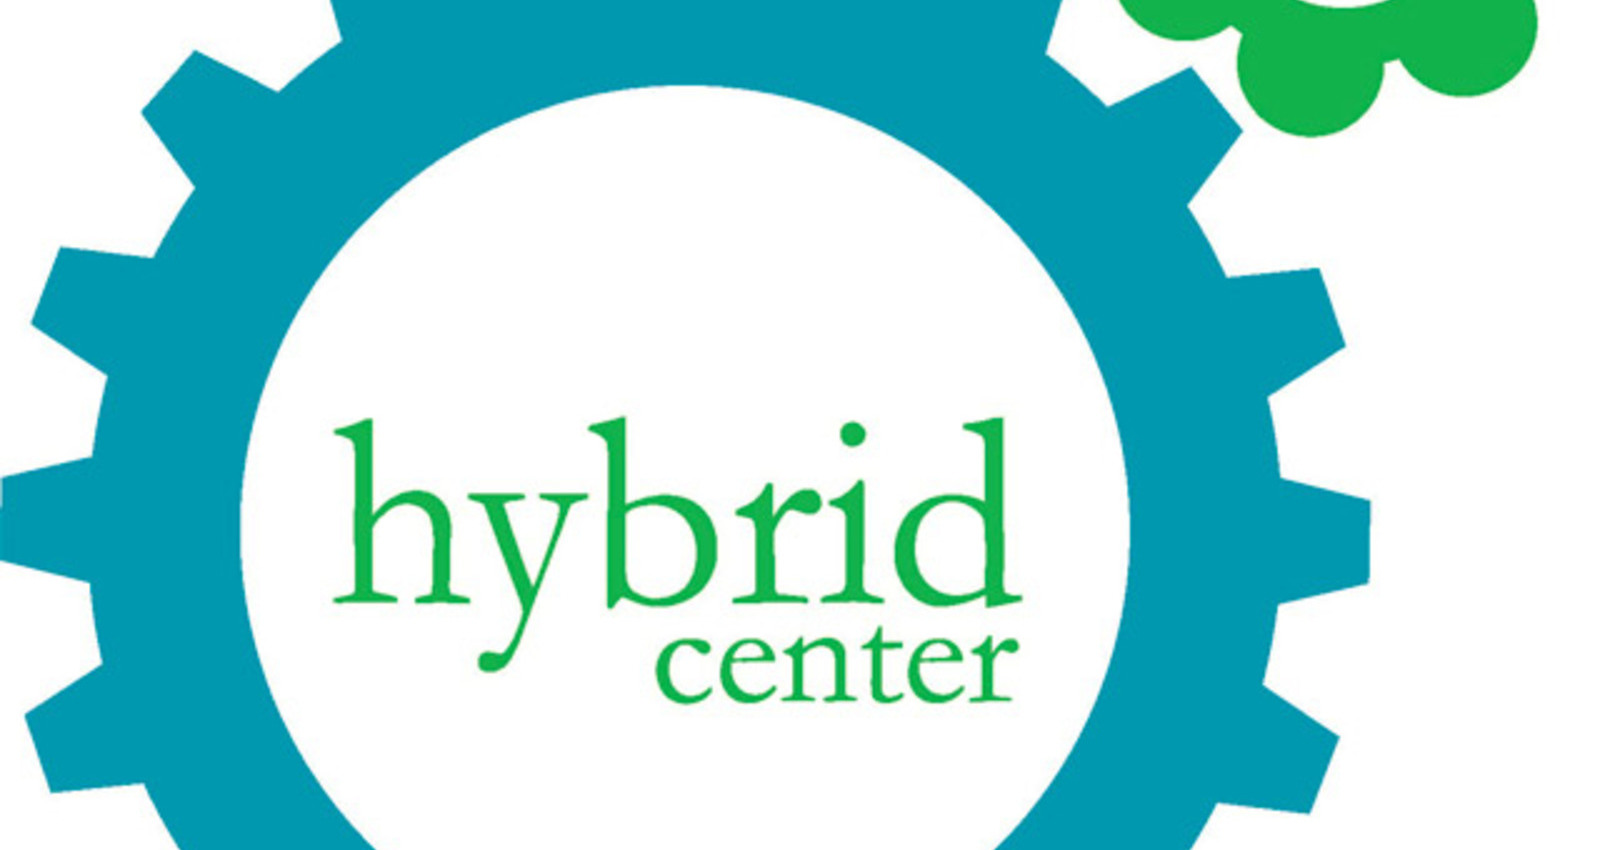 Hybrid center create nature